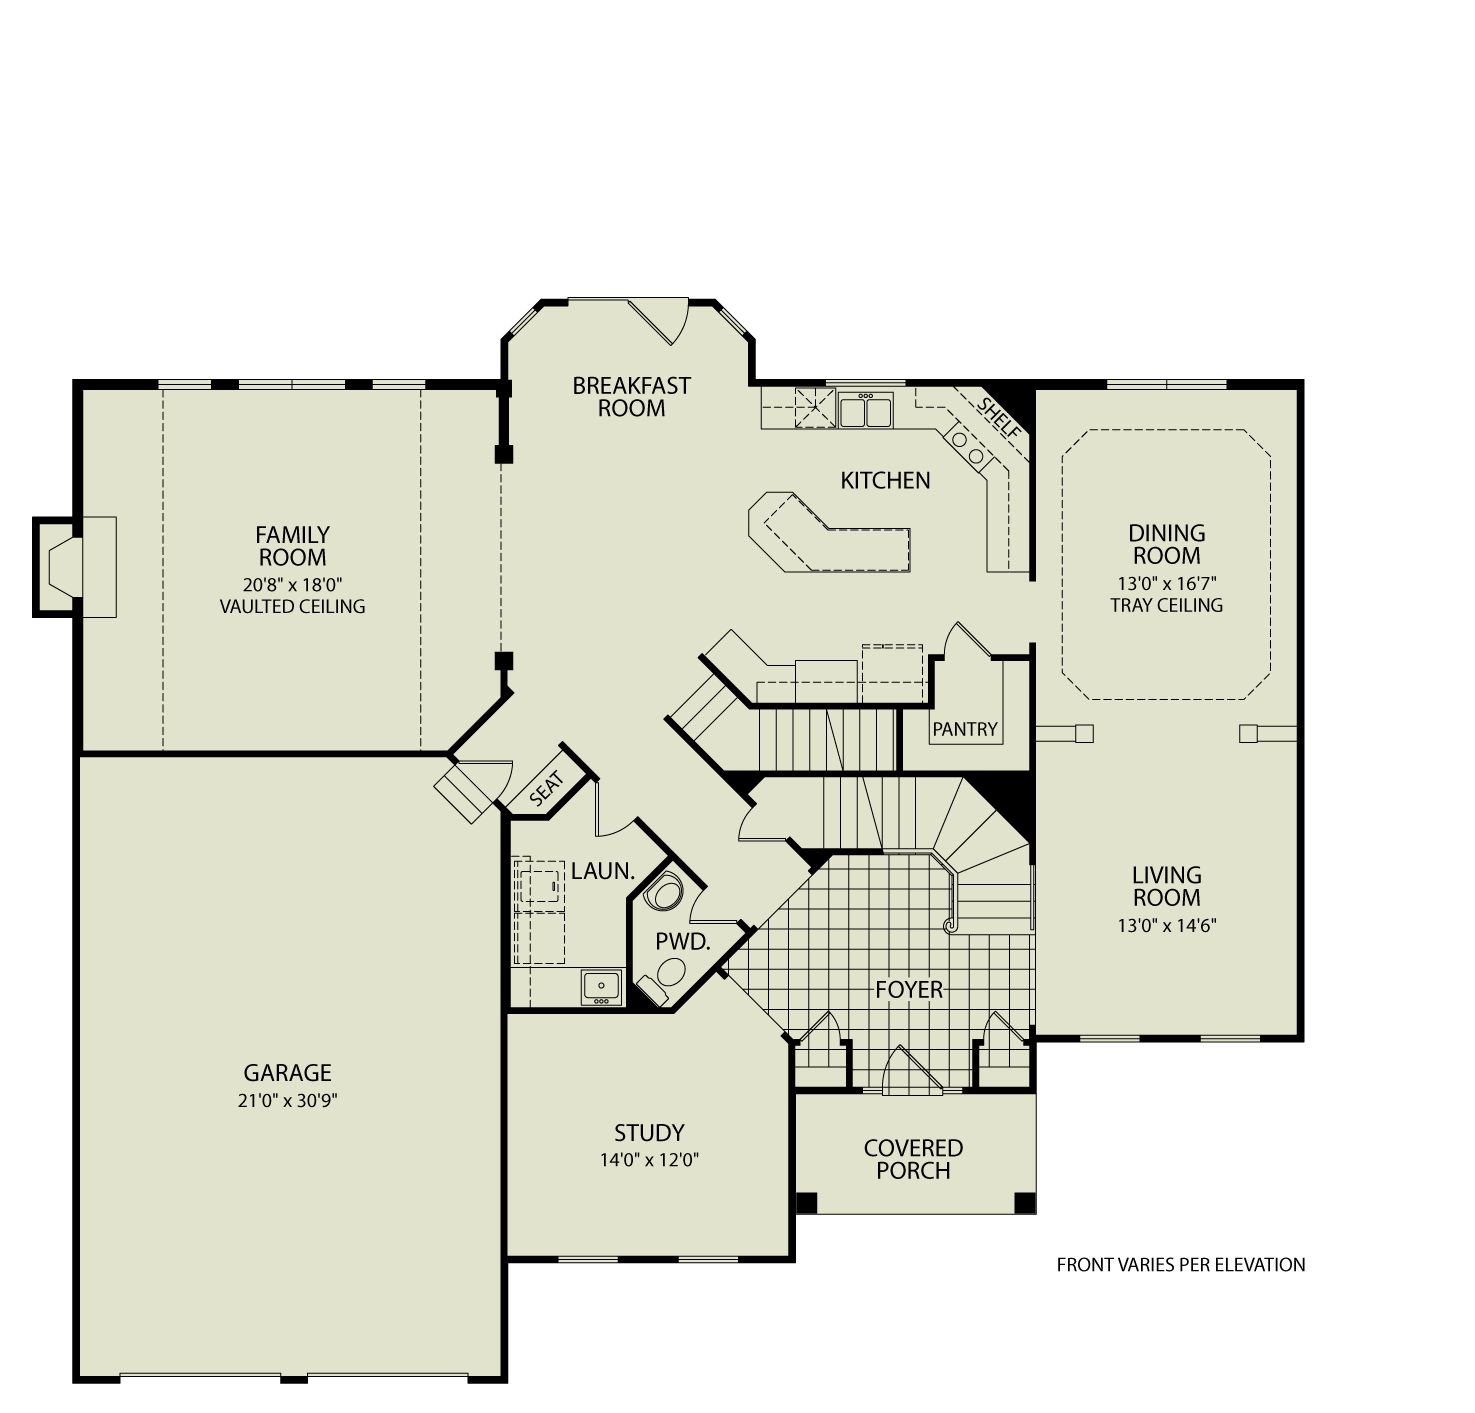 Hartwicke 142 drees homes interactive floor plans for Interactive home plans